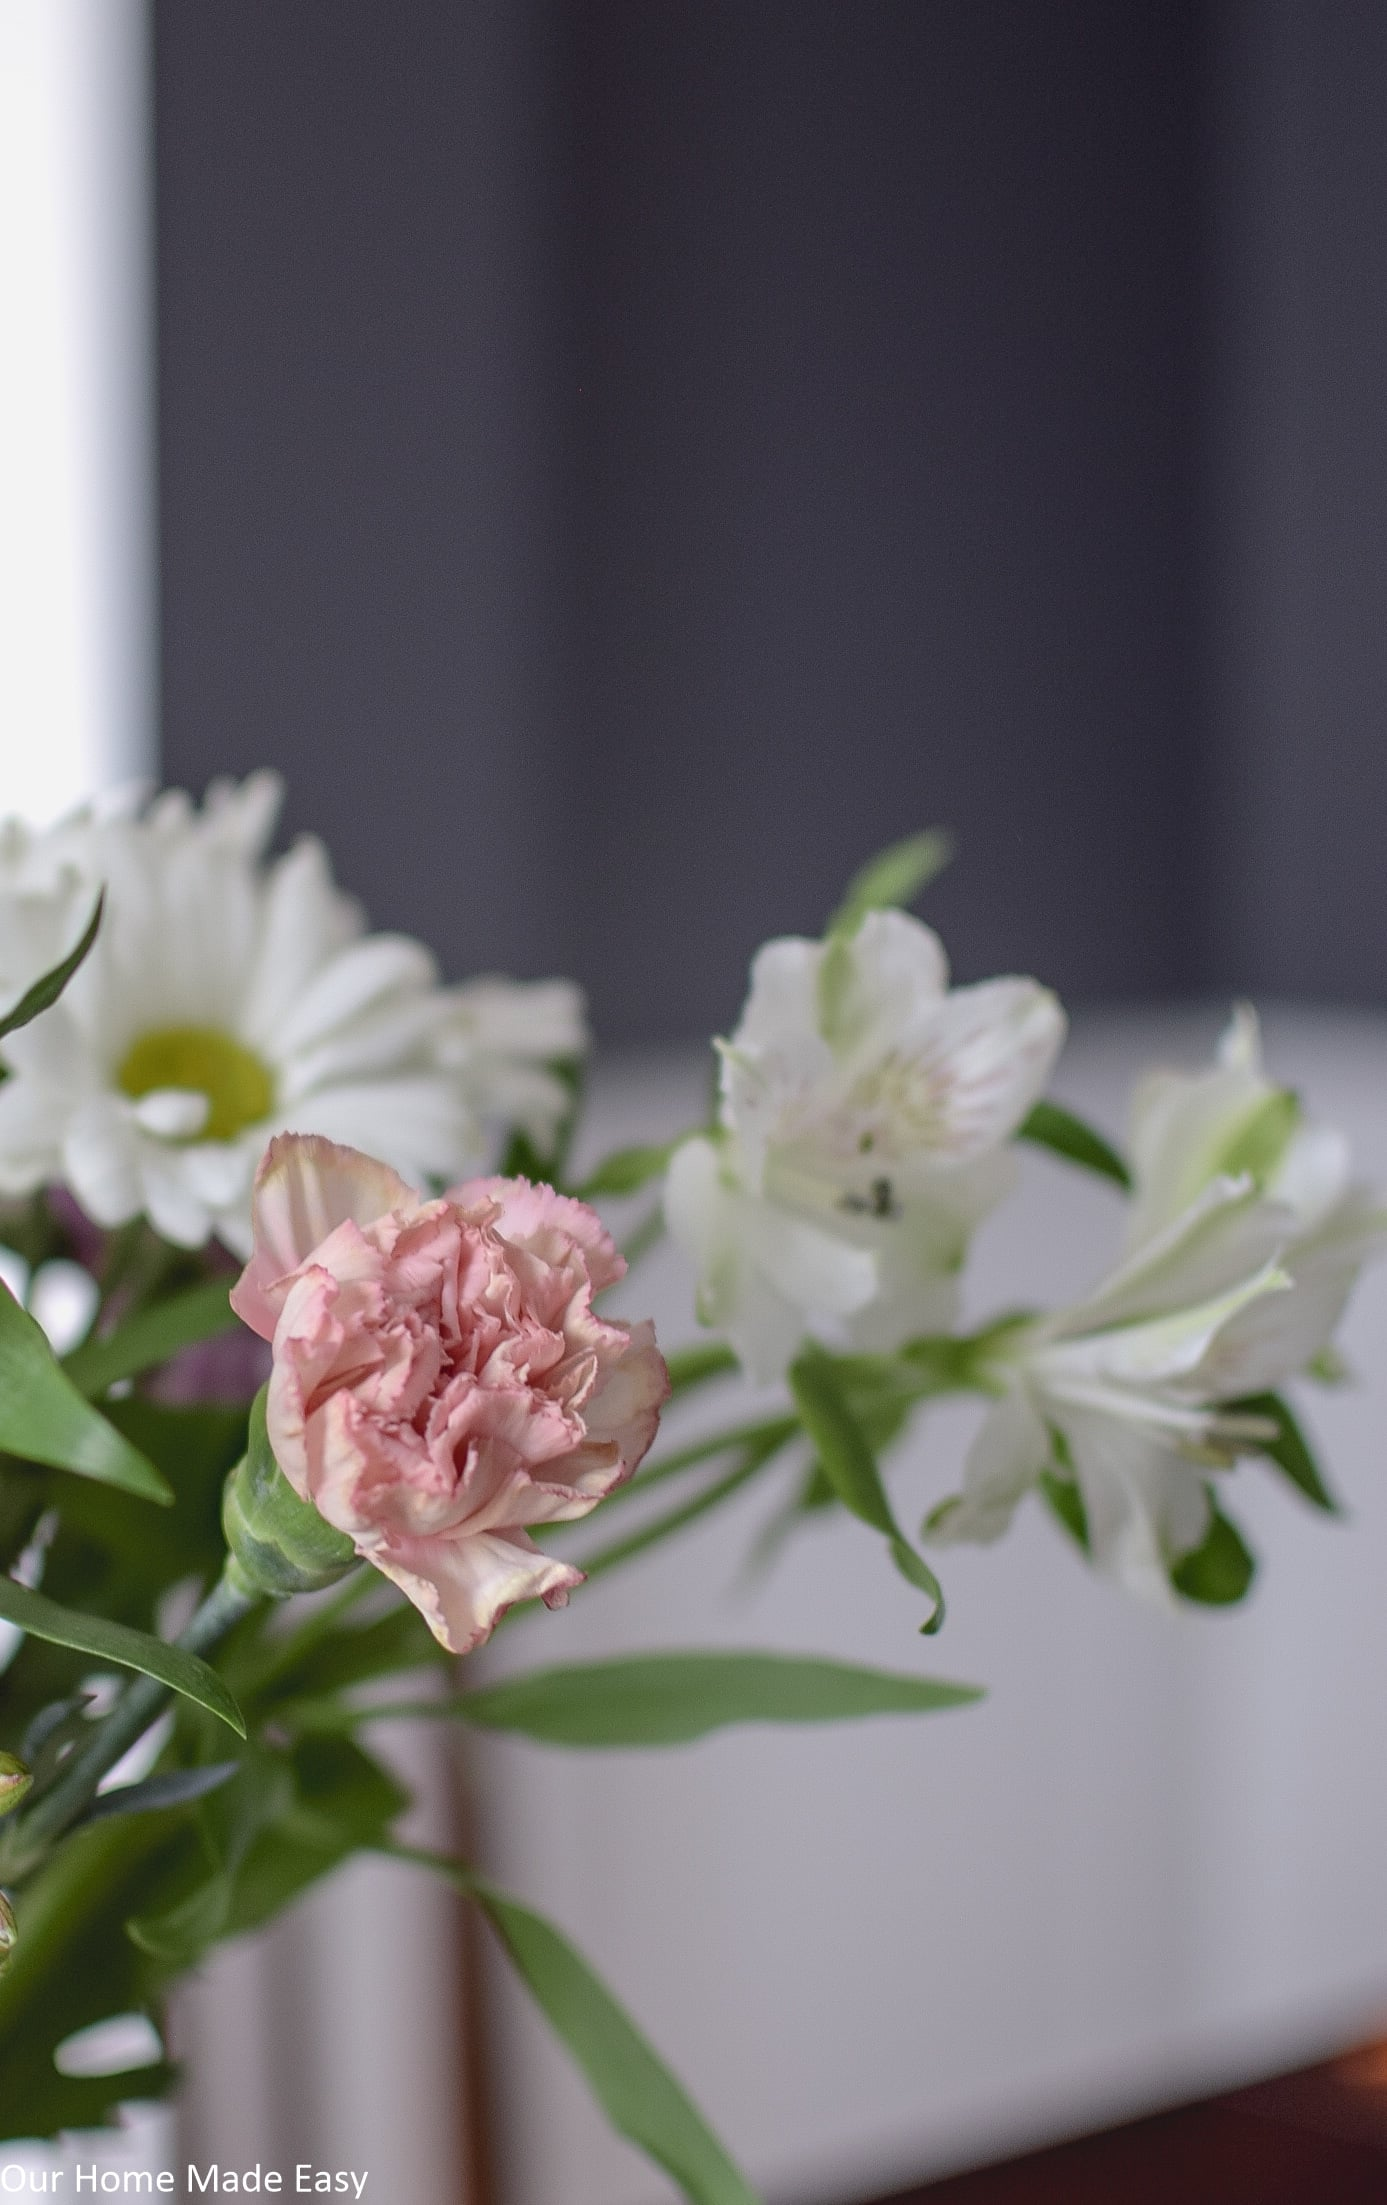 Fresh spring flowers, white daisies and pink carnations